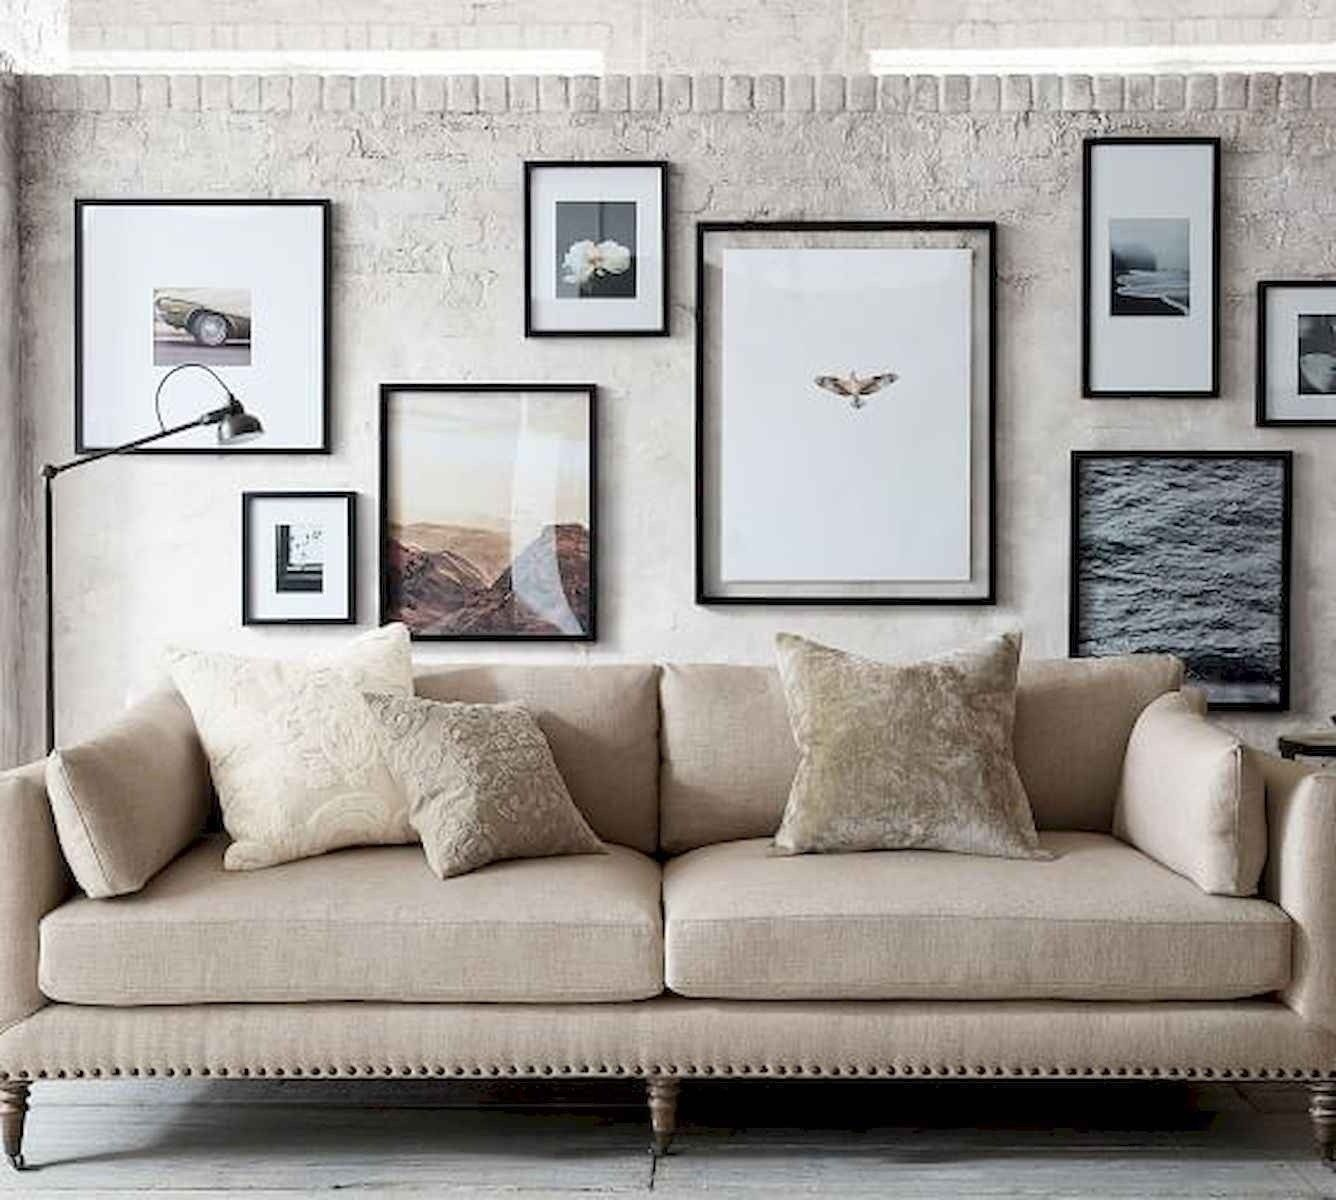 50 Genius Small Living Room Decor Ideas And Remodel For Your First Apartment Small Living Room Decor Wall Decor Living Room Upholstered Sofa Living room remodel photos